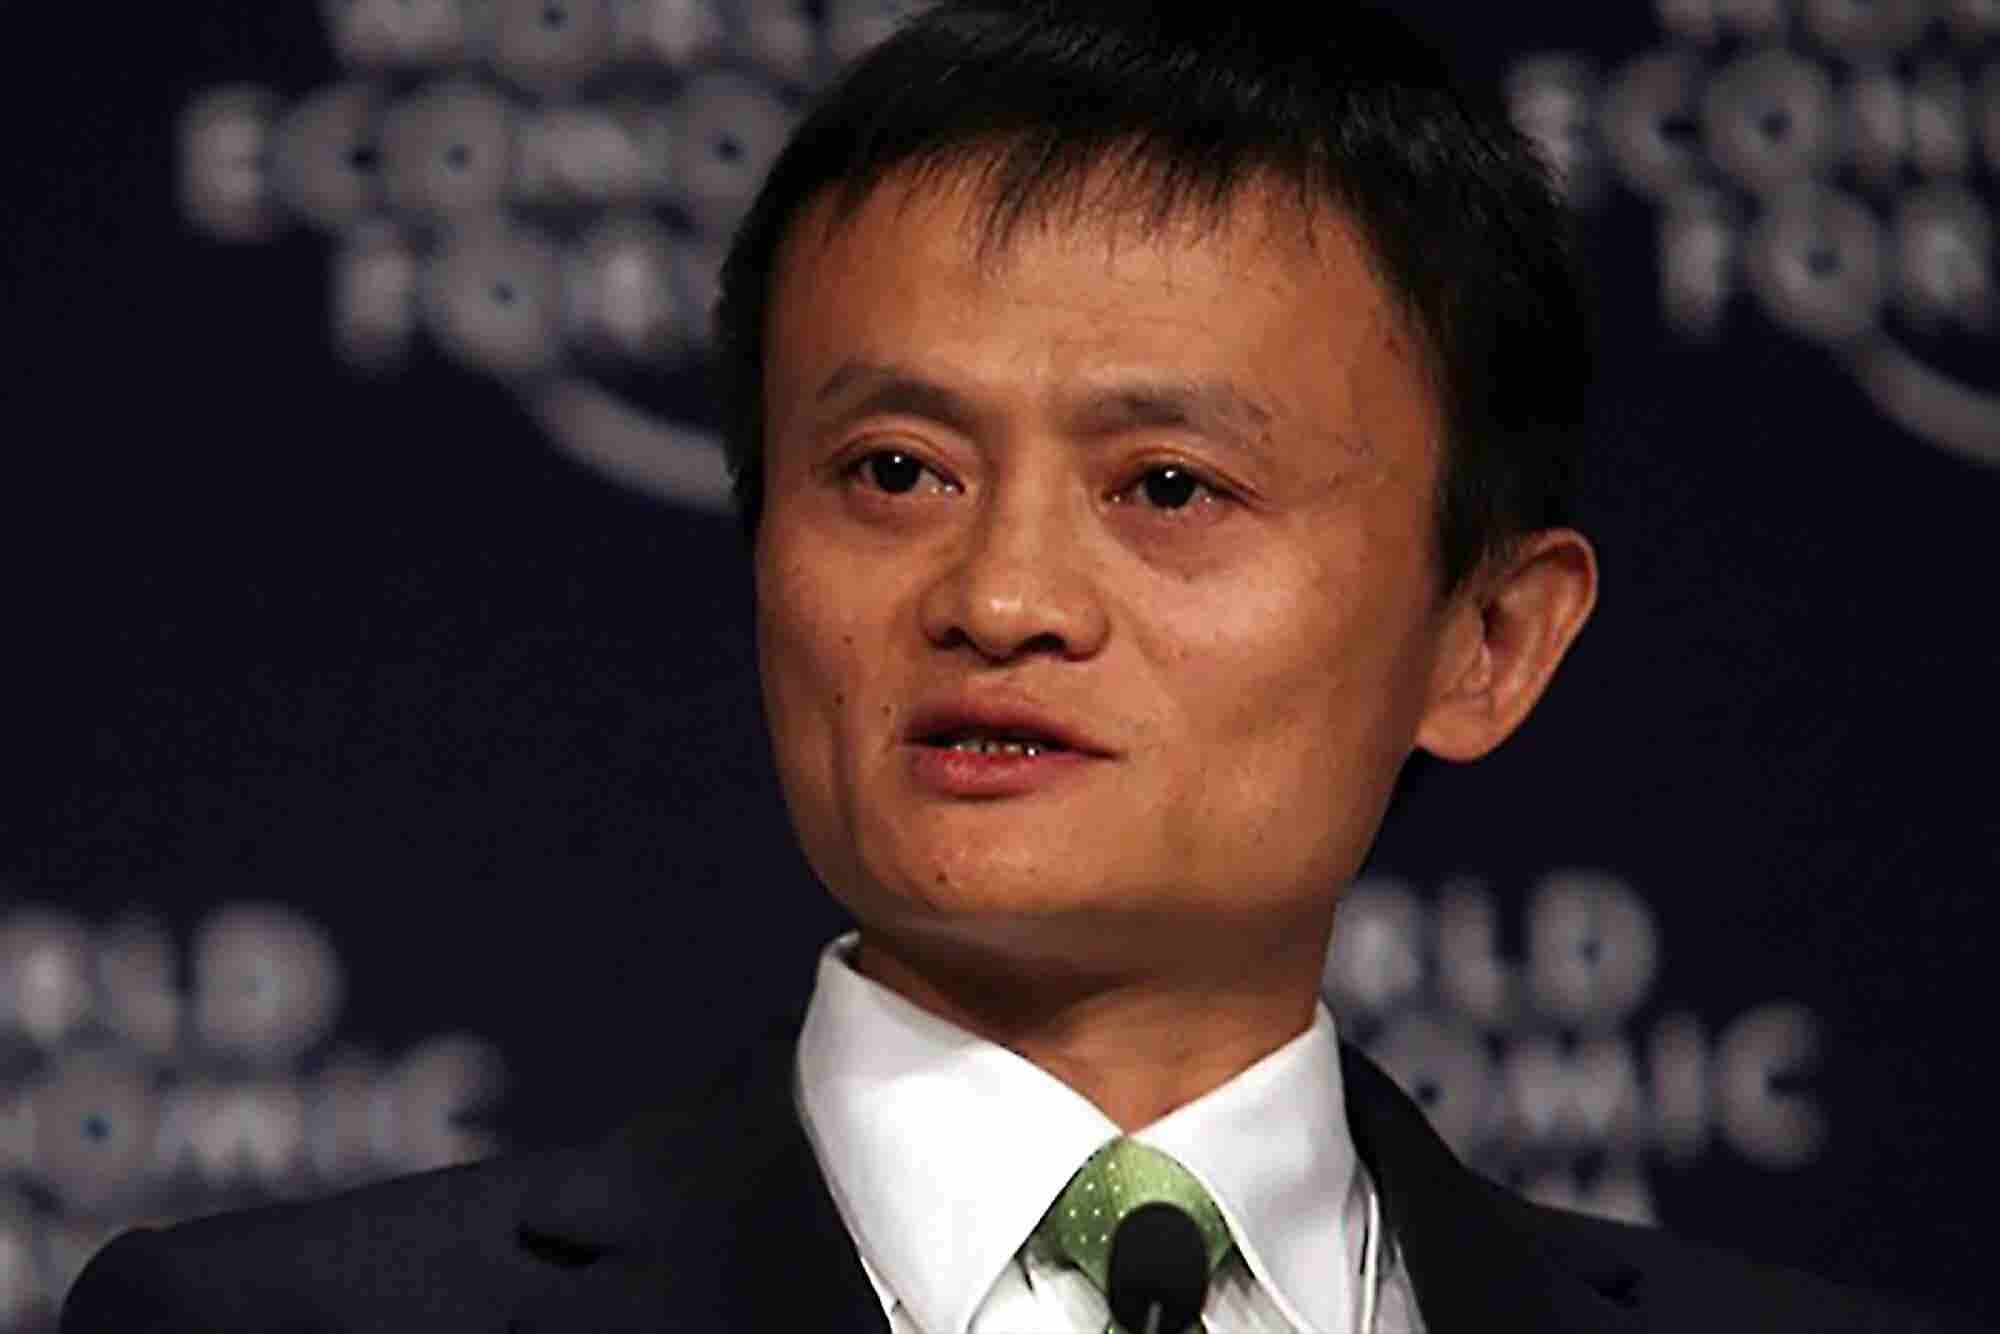 Jack Ma, China's Richest Man, Says He Was Happier When He Wasn't a Billionaire